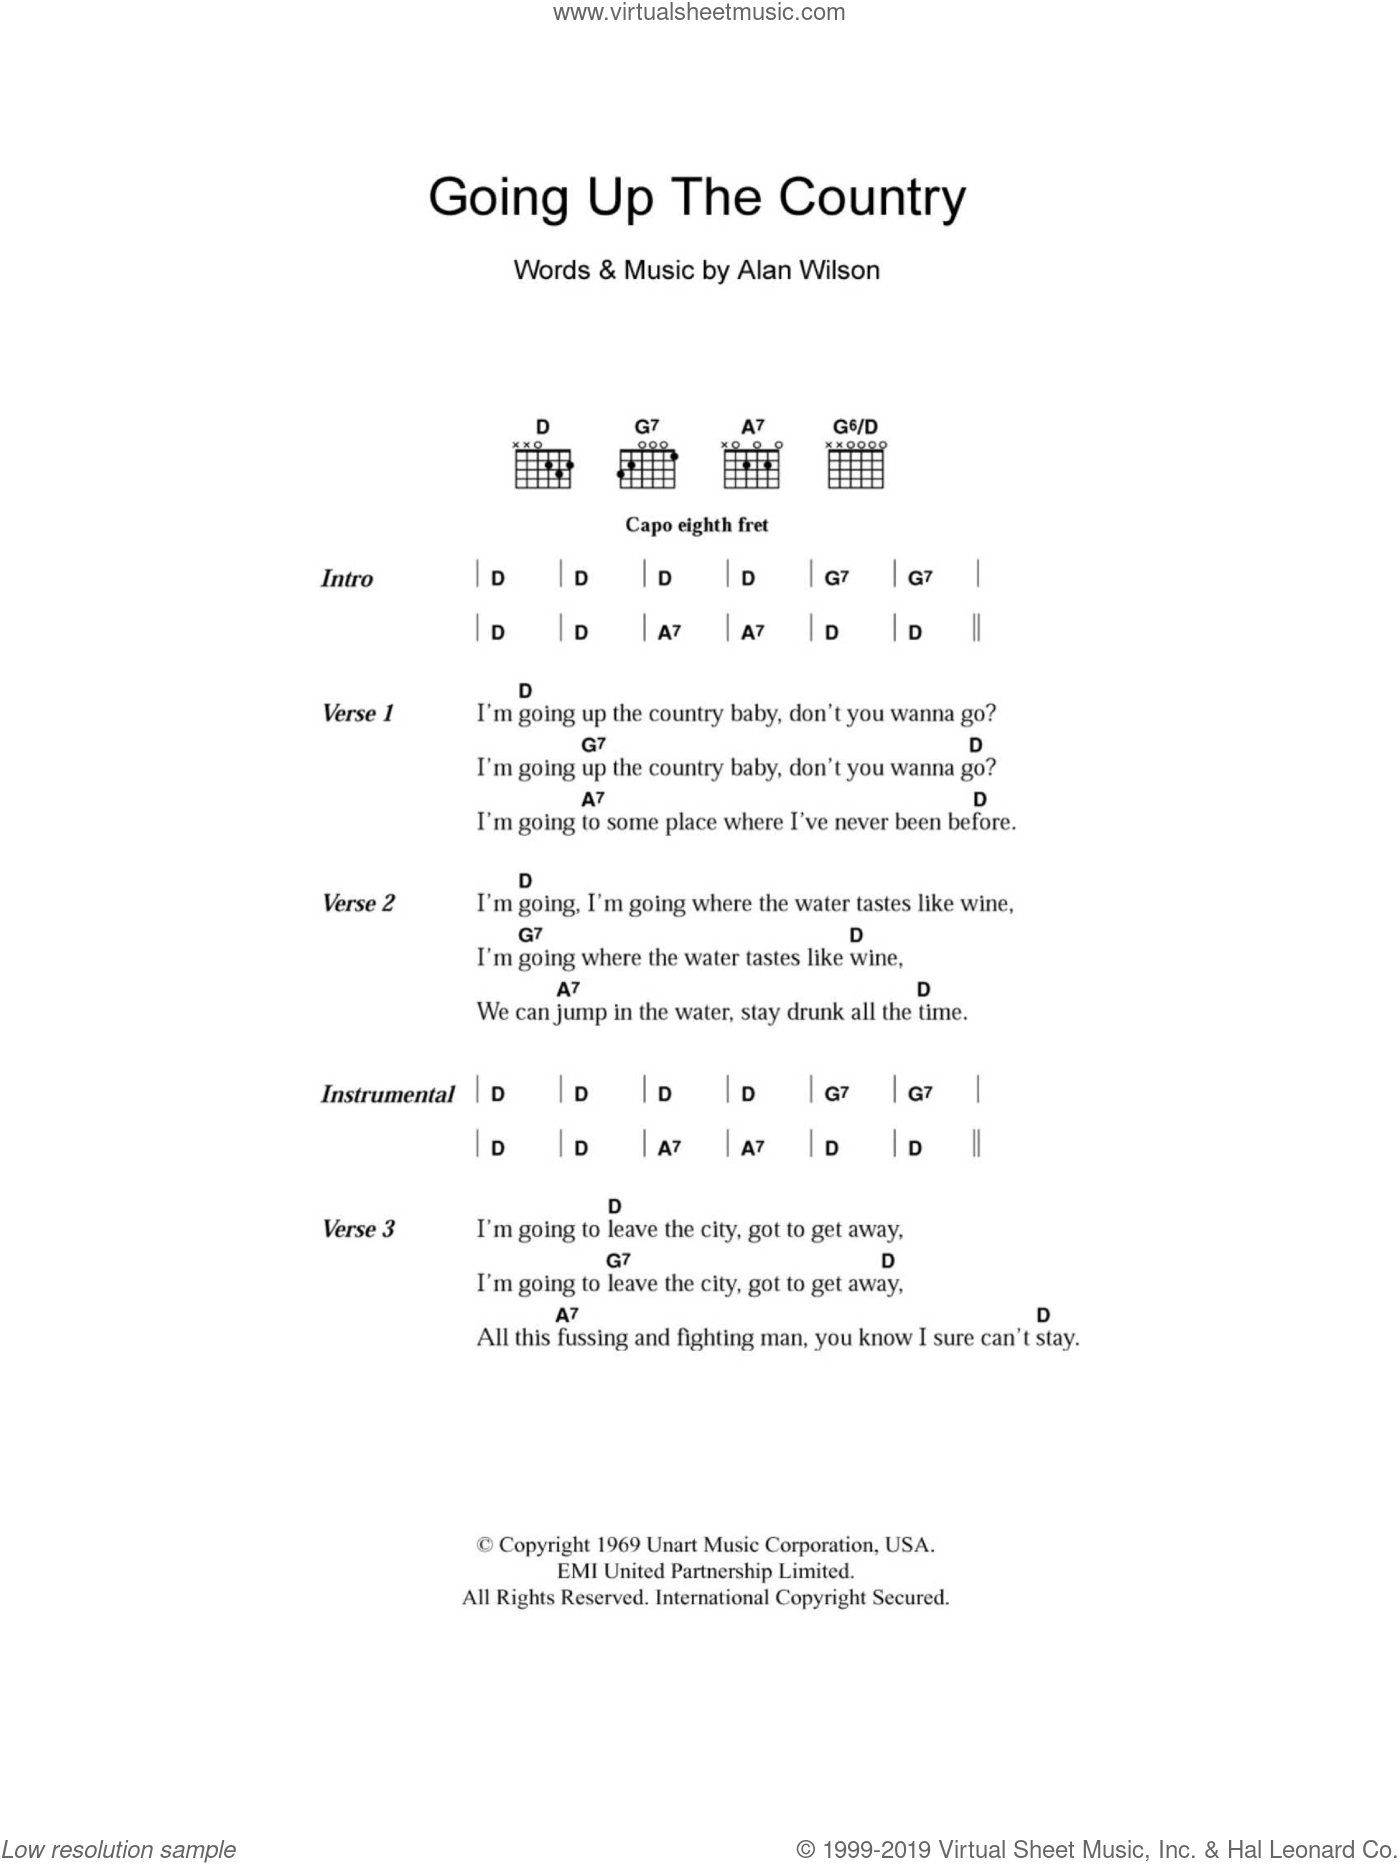 Going Up The Country sheet music for guitar (chords, lyrics, melody) by Alan Wilson